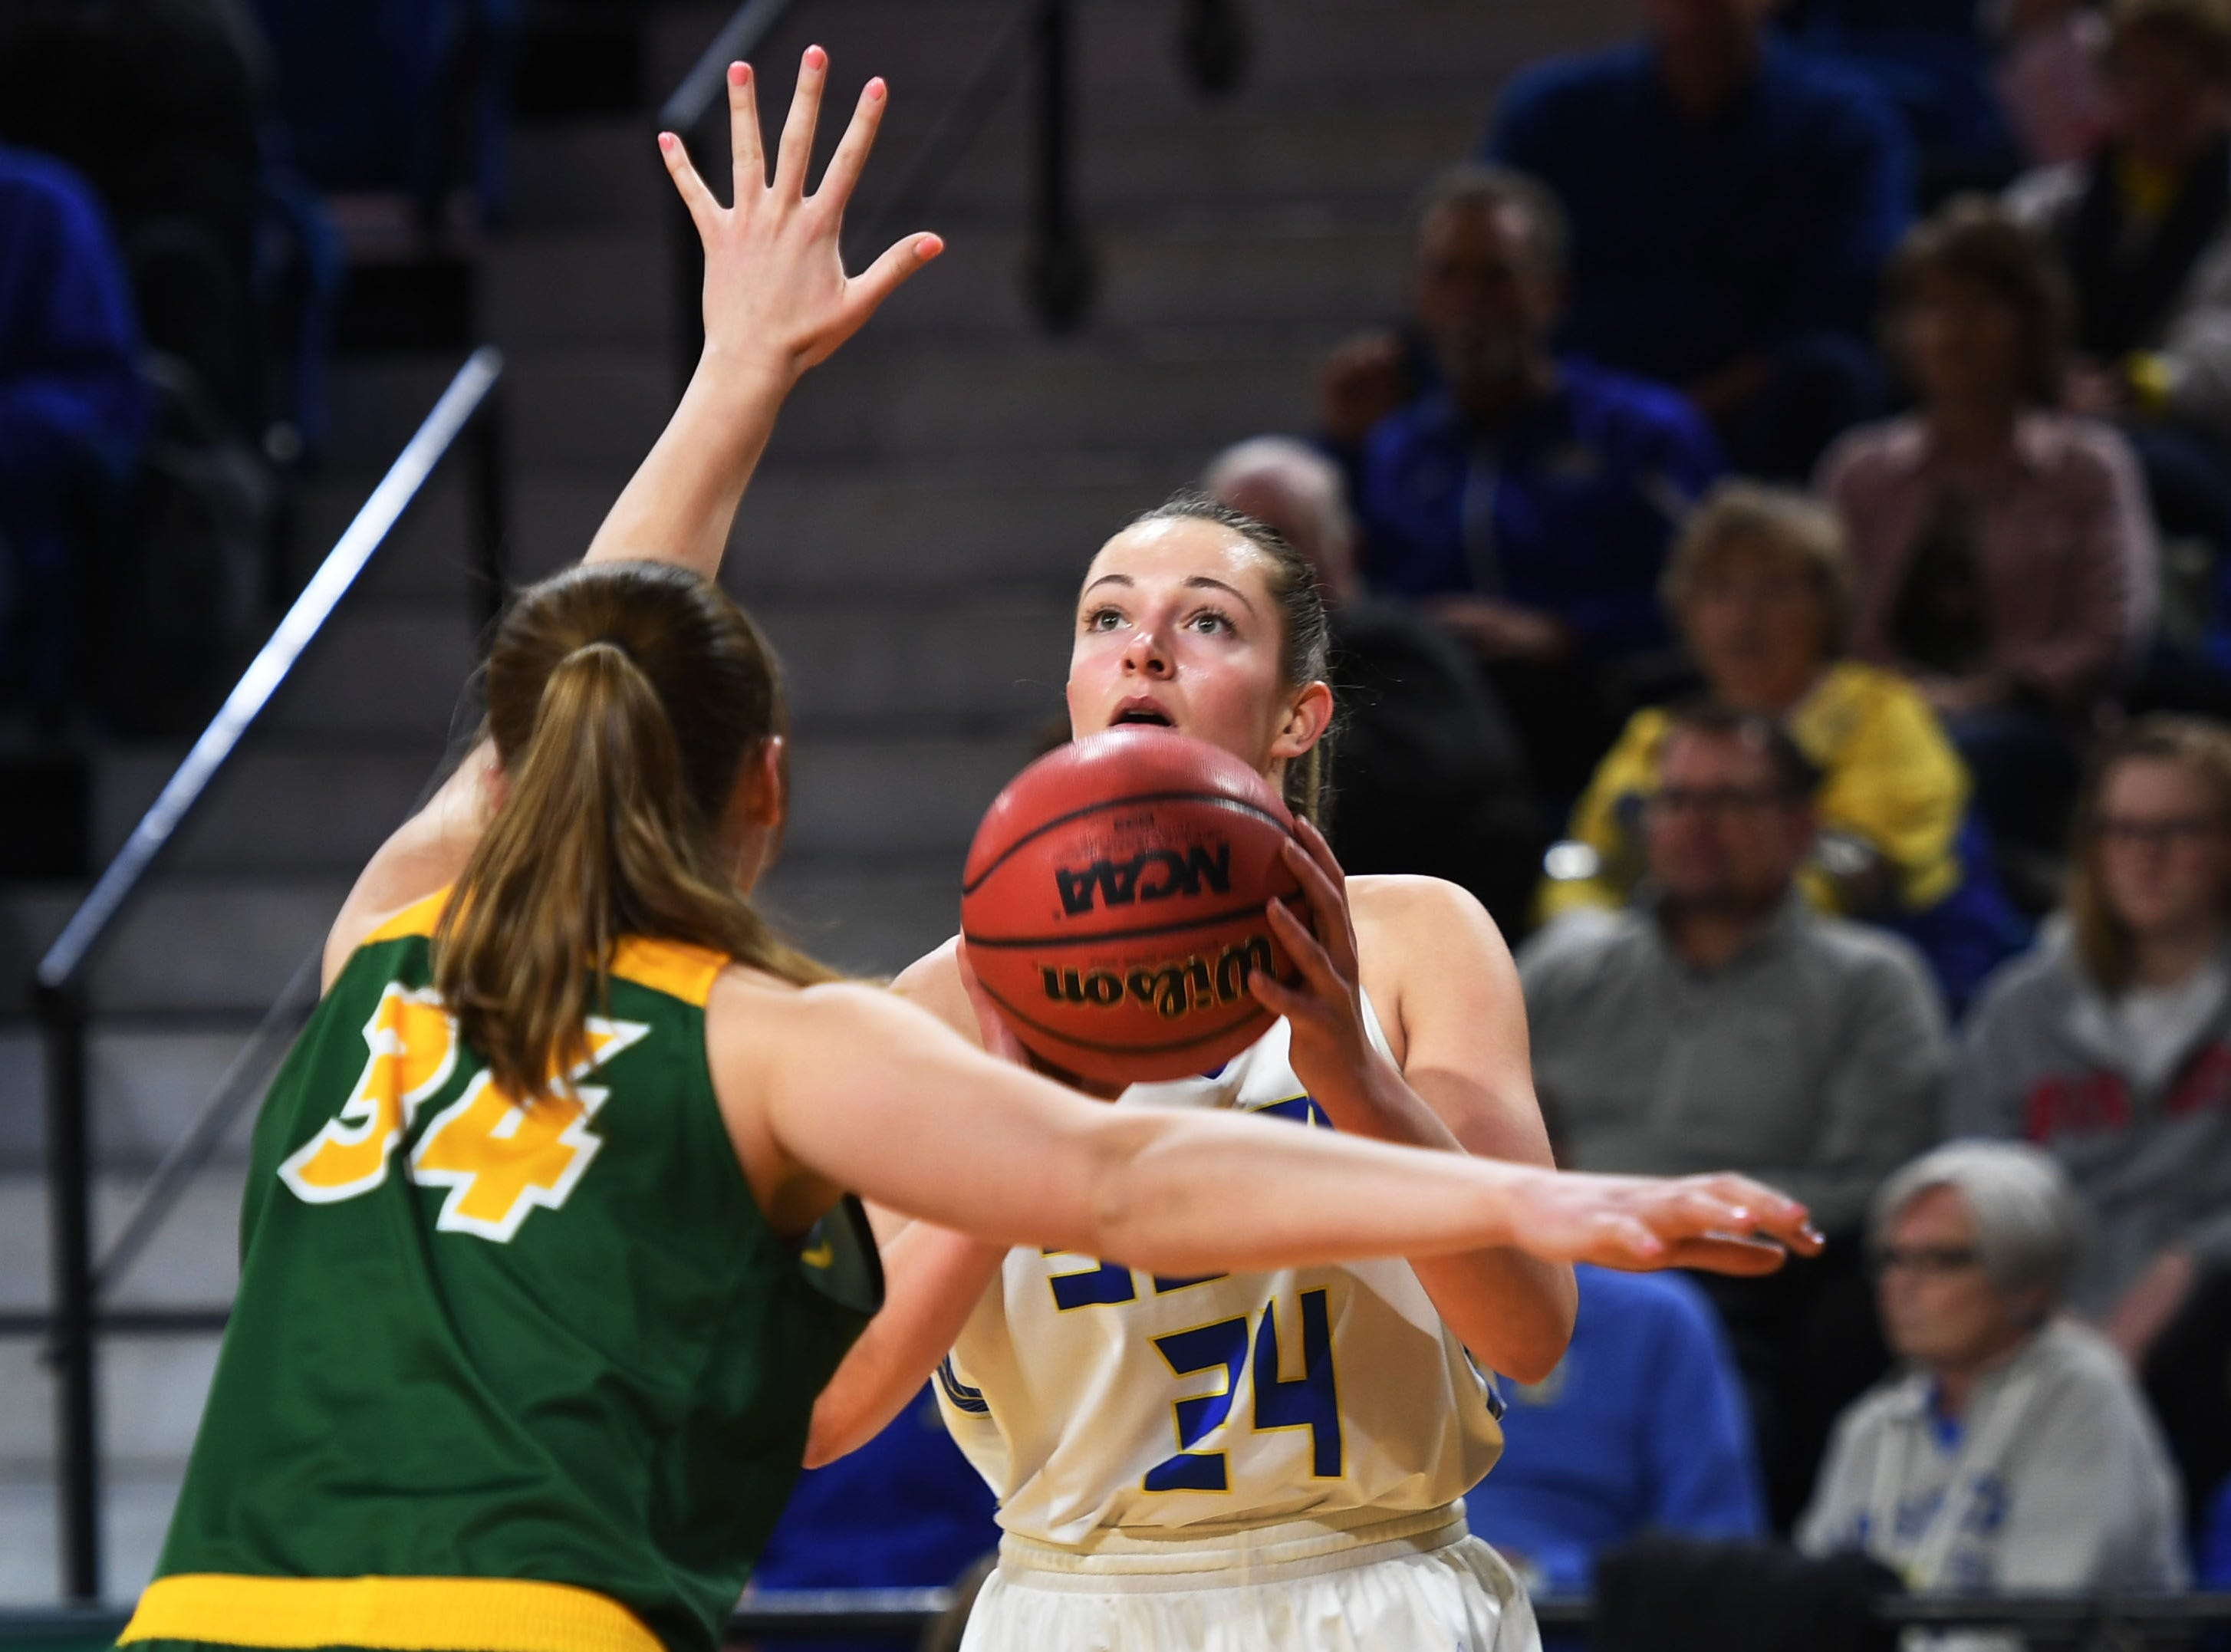 SDSU's Tagyn Larson attempts to shoot against NDSU Wednesday, Jan. 23, at Frost Arena in Brookings.